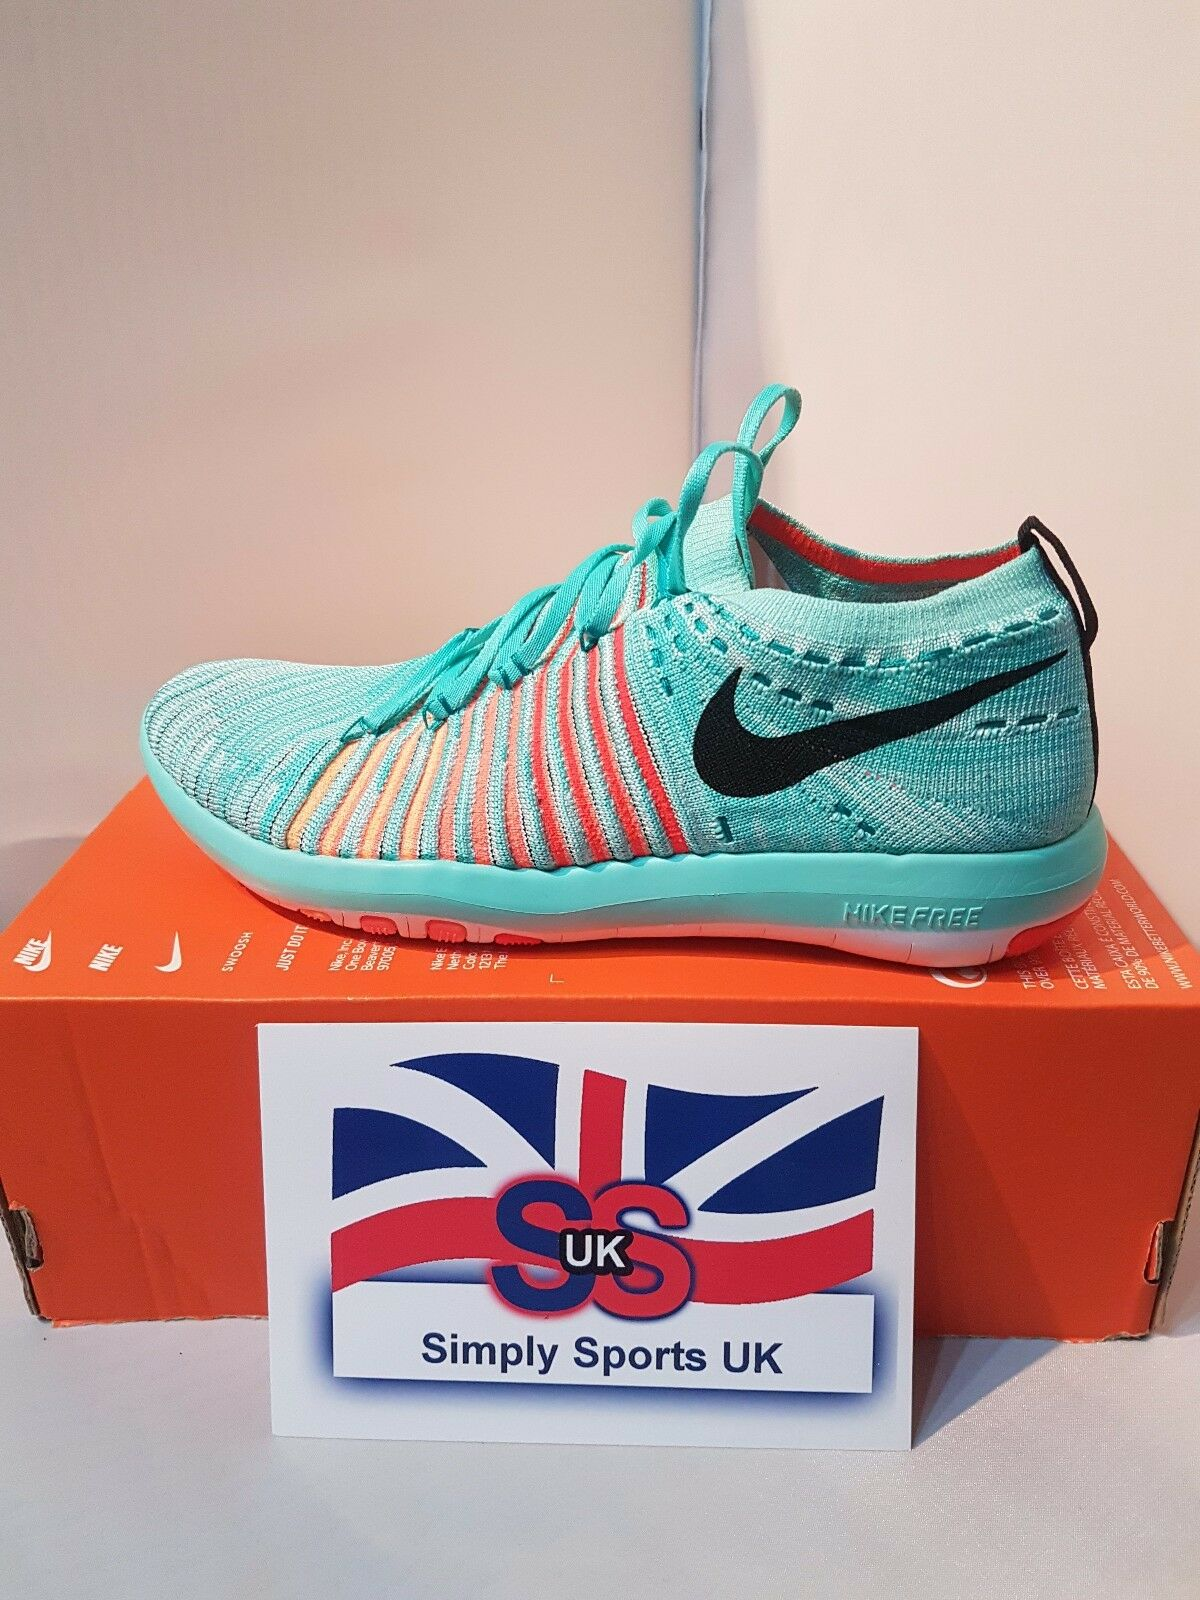 WM NIKE FREE 7 TRANSFORM FLYKNIT  UK 4.5 US 7 FREE EU 38 1b6ec2